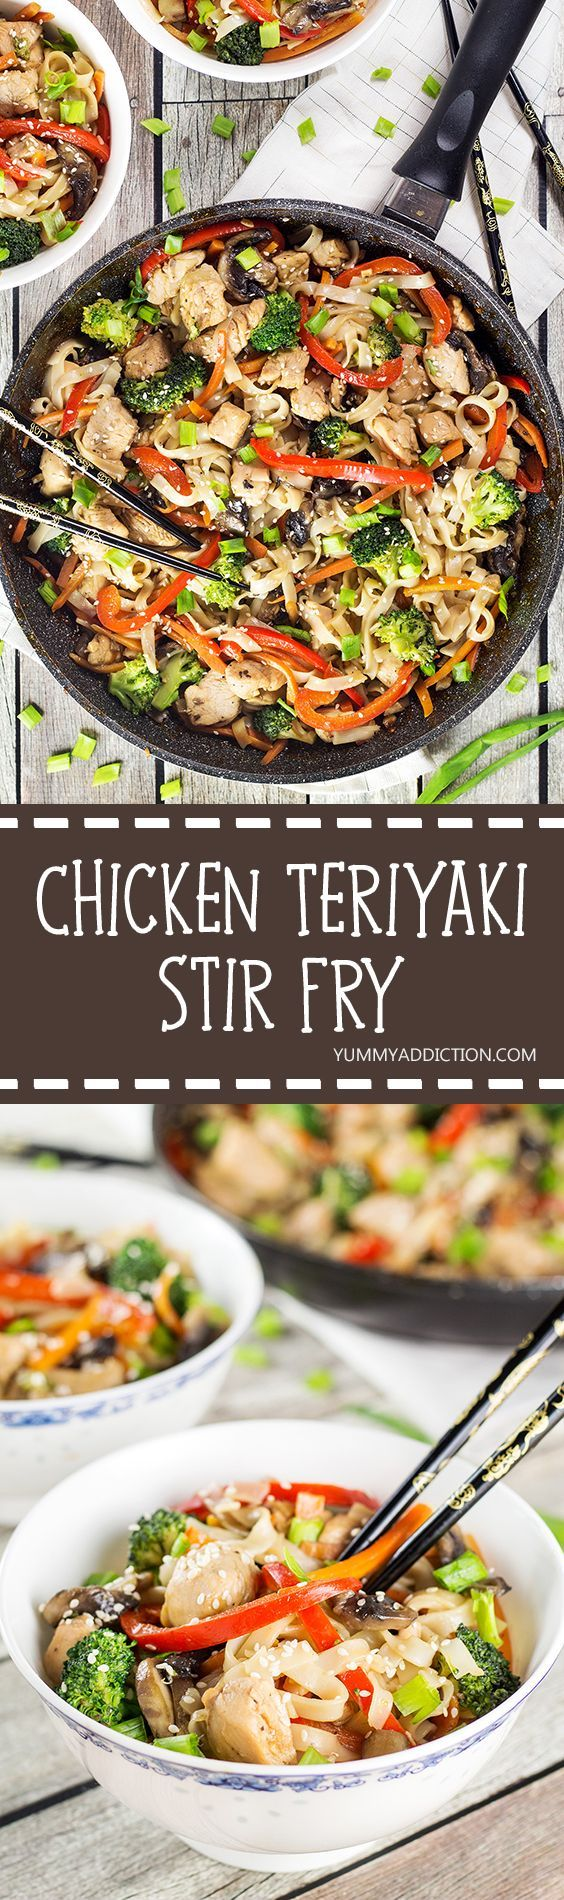 This Chicken Teriyaki Stir Fry makes a perfect quick & easy meal. The flavorful chicken is complemented by the delicate rice noodles and lots of veggies!   yummyaddiction.com